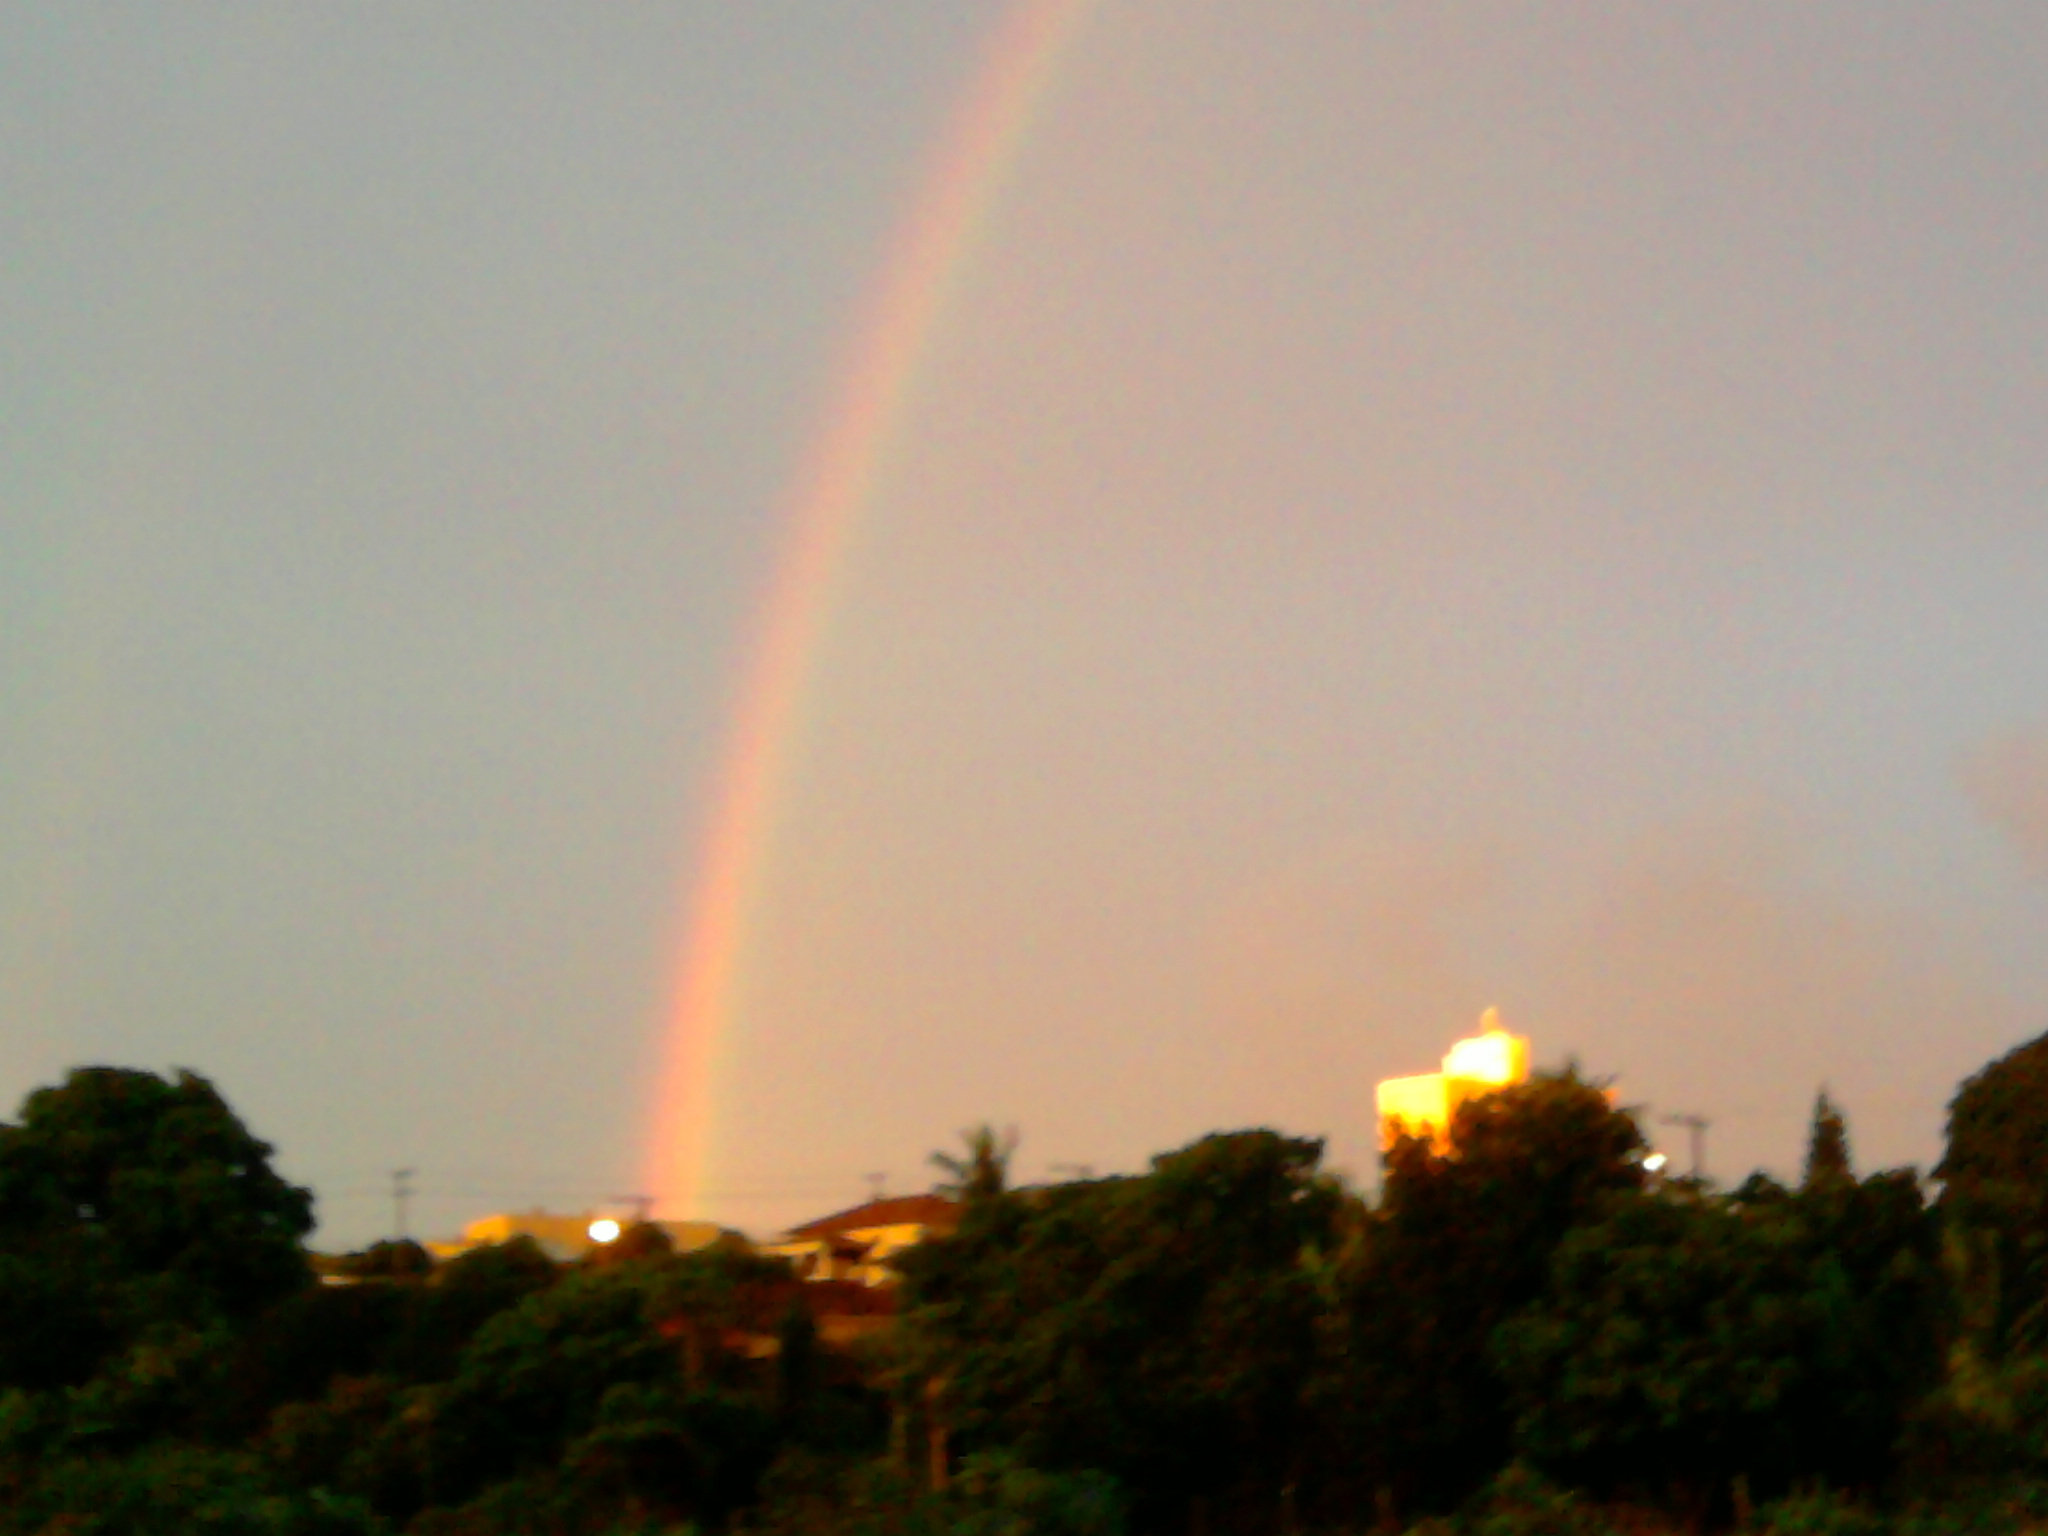 Rainbow at sunset... - rainbows Photo (32814400) - Fanpop